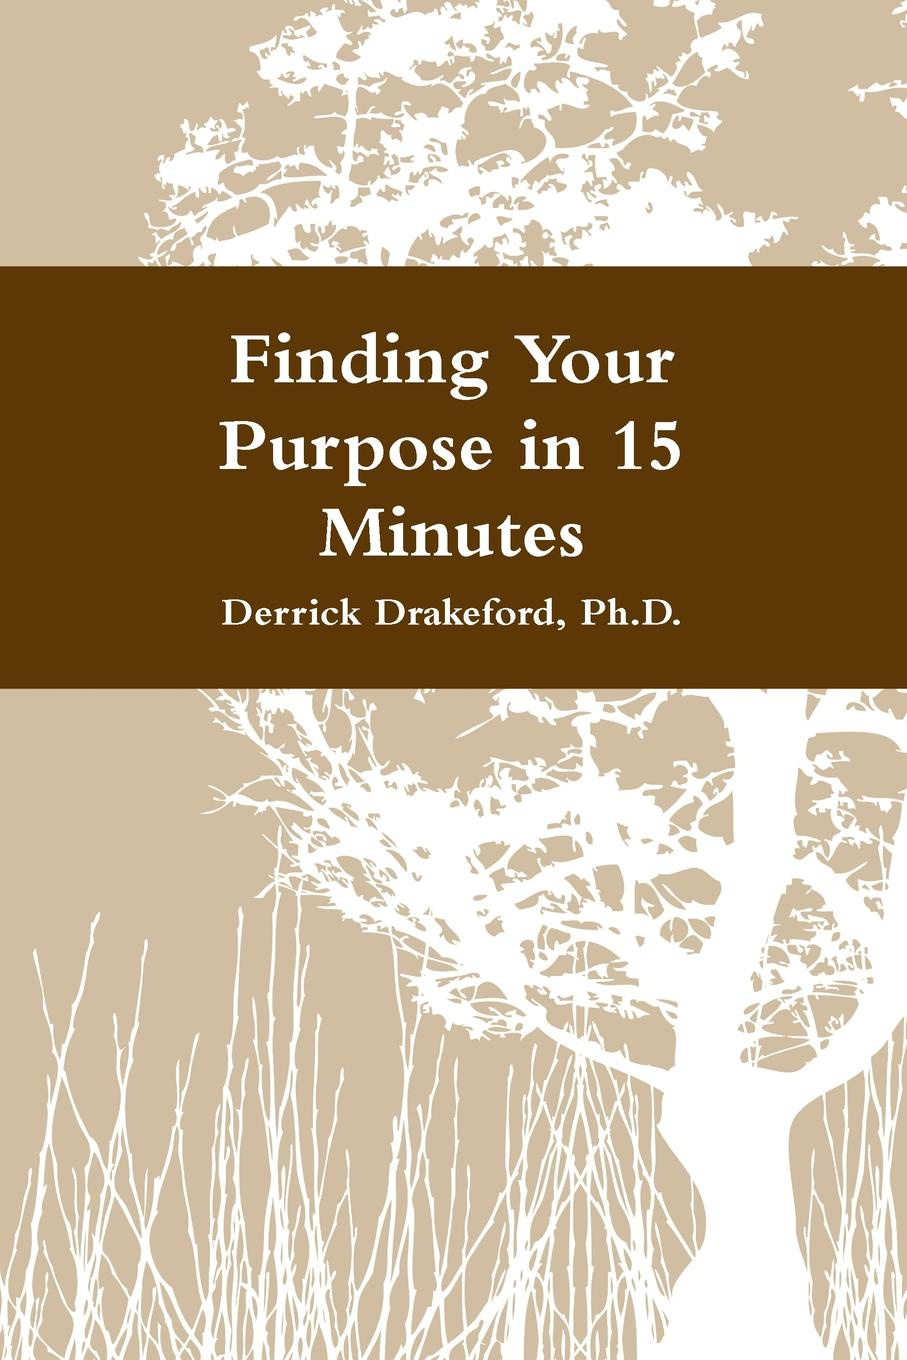 Dr. Derrick Drakeford Finding Your Purpose in 15 Minutes leadership institute women with purpose finding life balance direction